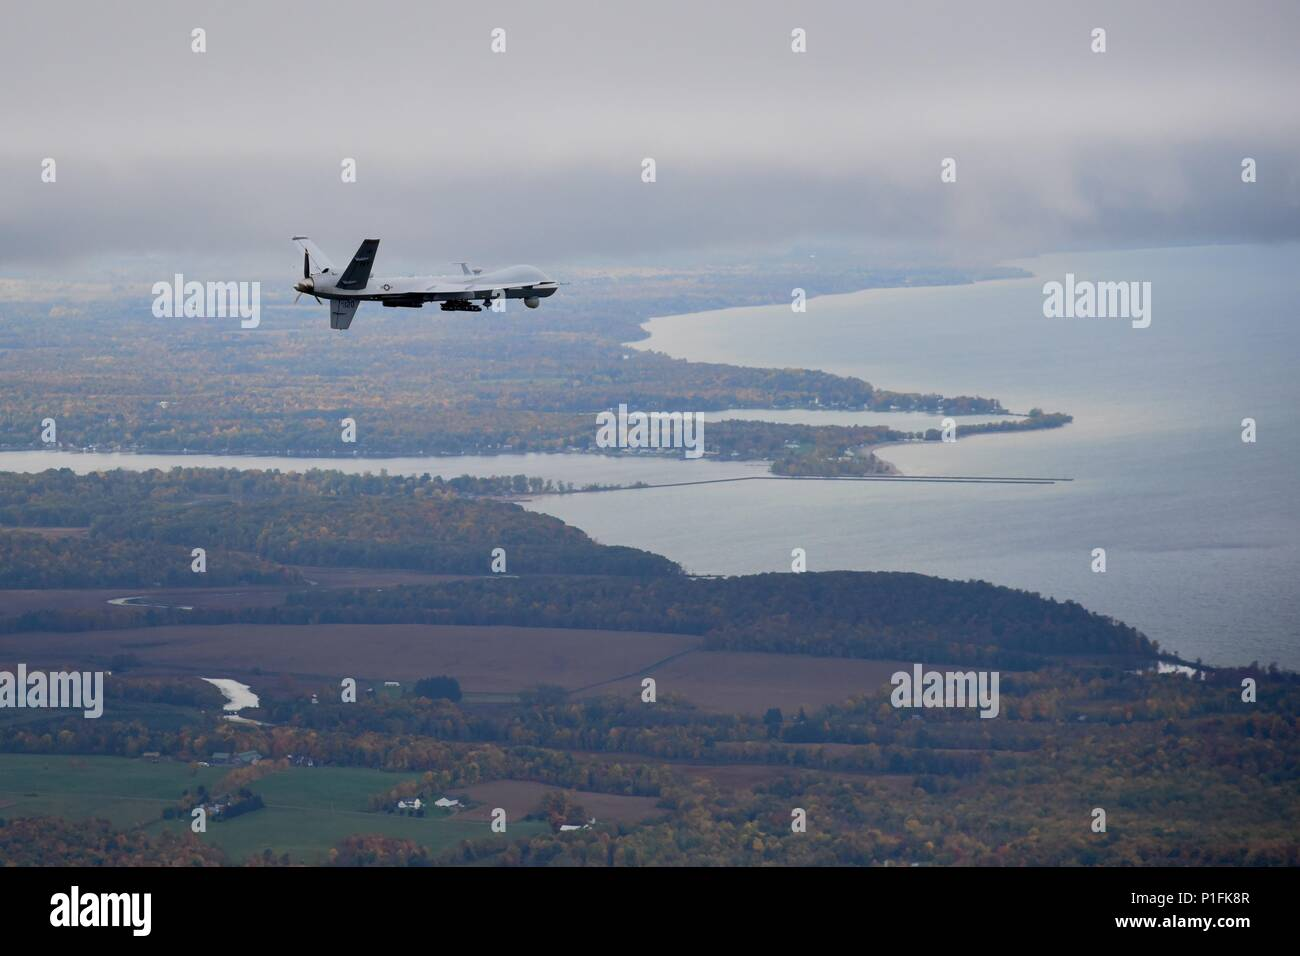 Syracuse, NY – A remotely piloted MQ-9 Reaper operated by the New York Air National Guard's 174th Attack Wing flies a routine training mission over Central New York on October 23, 2016. The Civil Air Patrol provides chase plane operations for the MQ-9, to and from restricted air space, to meet FAA see-and-avoid requirements of remotely piloted aircraft (RPA). (U.S. Air National Guard Photo by Master Sgt. Eric Miller/released) - Stock Image